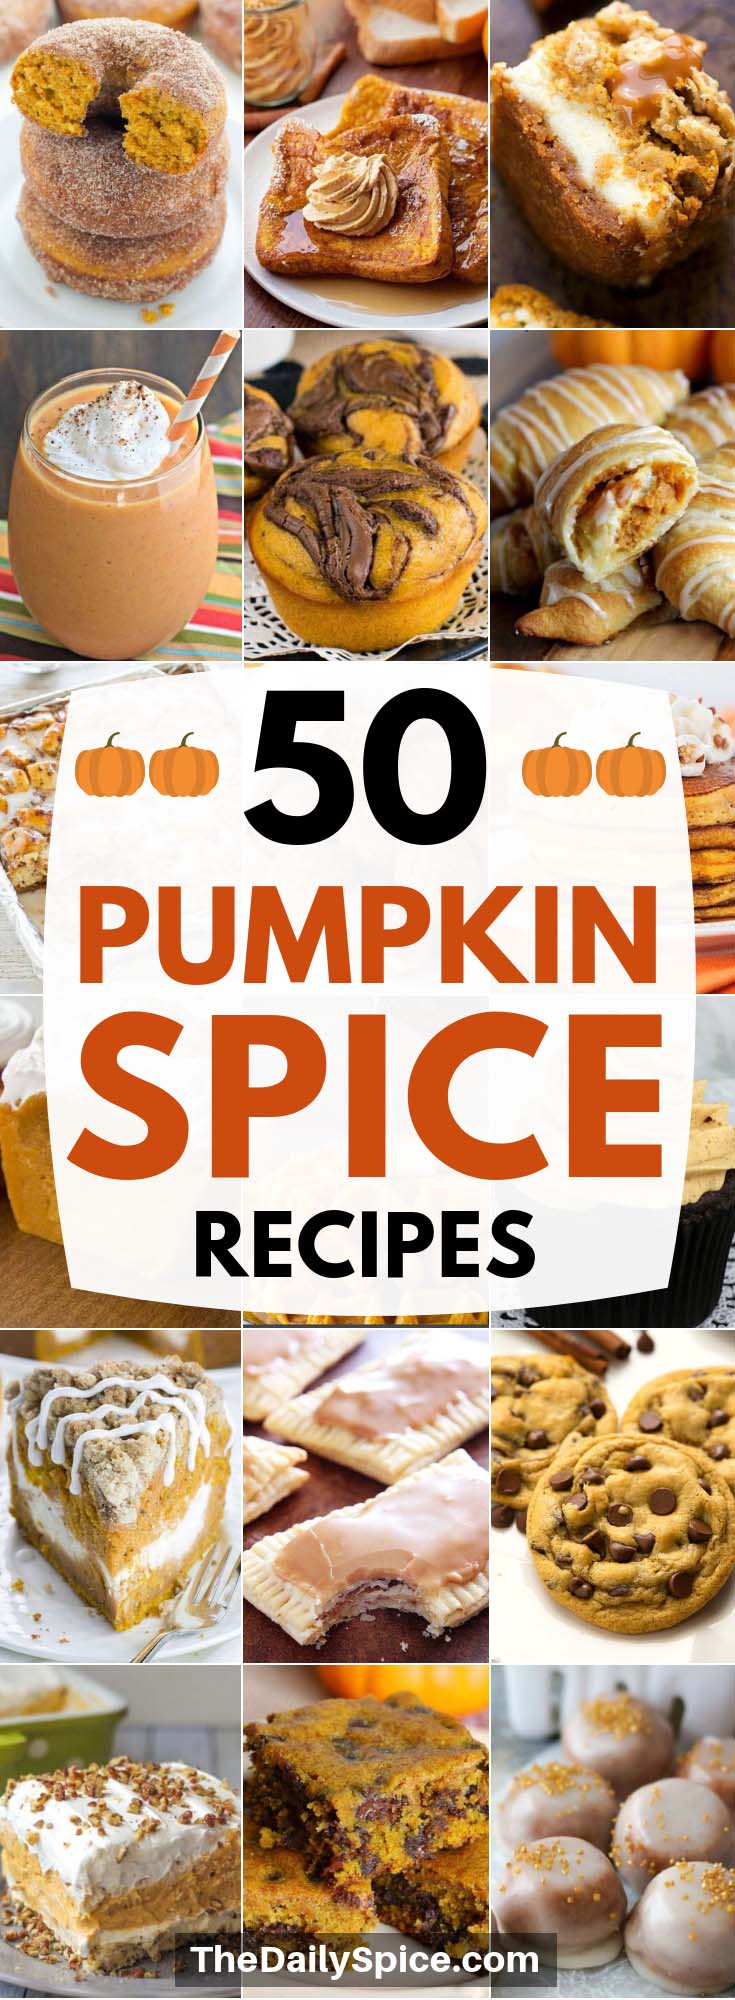 Easy Pumpkin Spice Recipes perfect for Thanksgiving, Christmas and the holidays